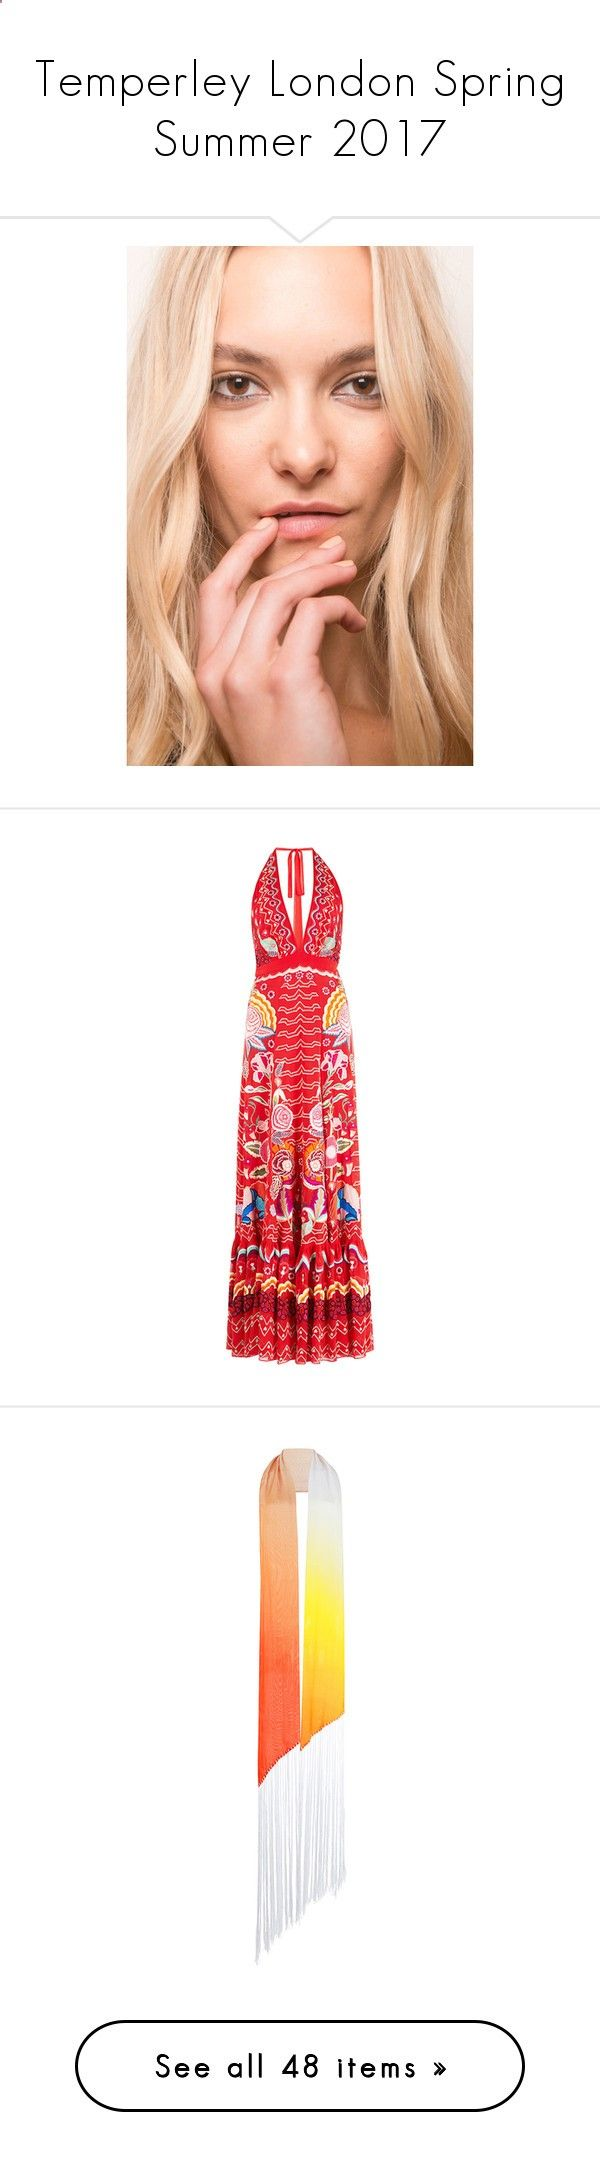 Temperley London Spring Summer 2017 by enam ❤ liked on Polyvore featuring logo, text, dresses, red, a line flared dress, embroidered dress, red v neck dress, temperley london dress, red a line dress and accessories